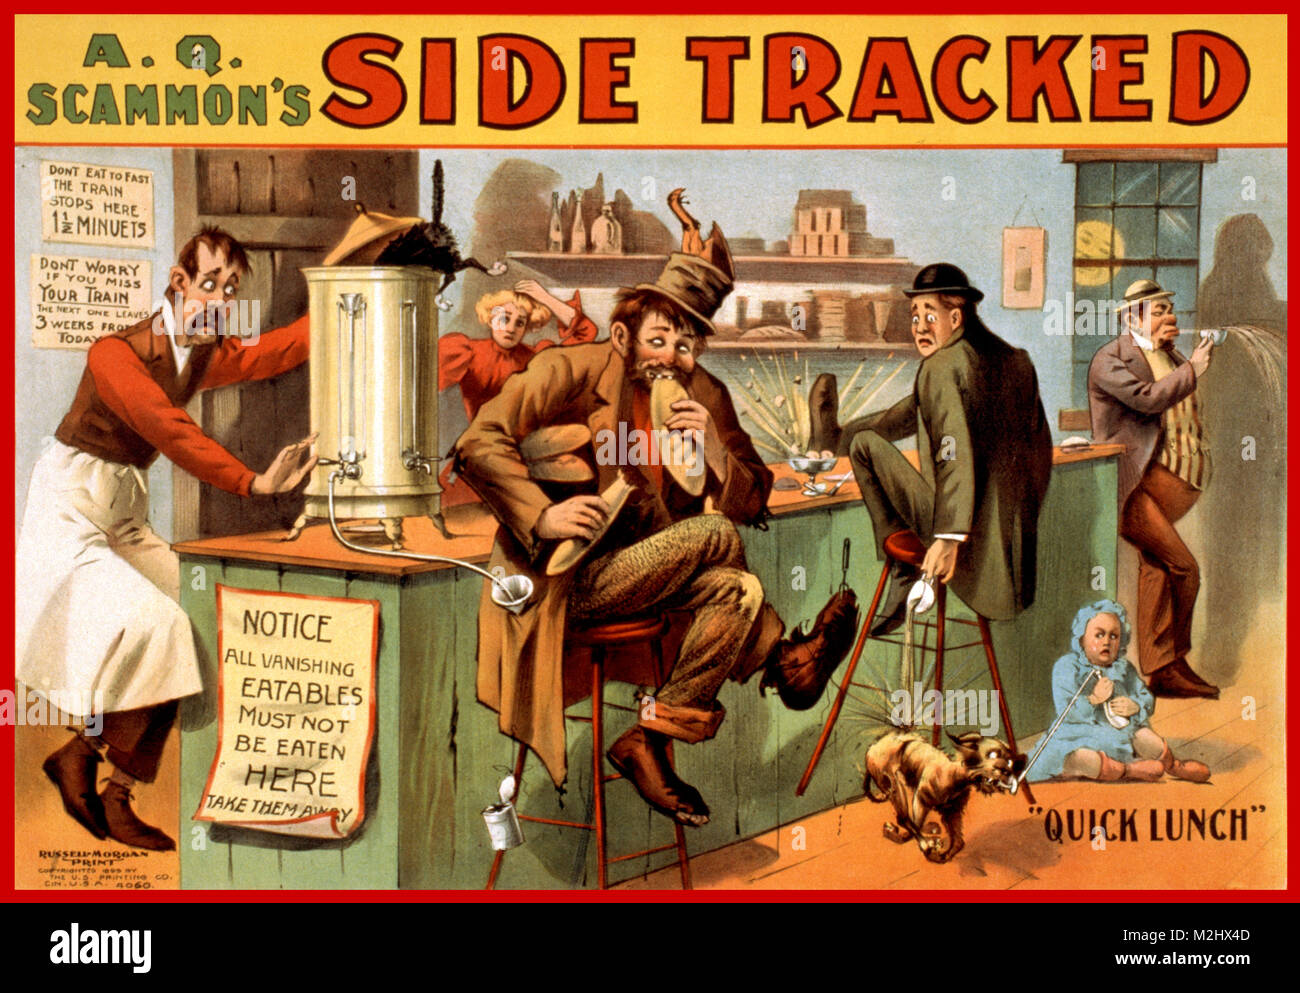 'A.Q. Scammon's Side Tracked', 1899 - Stock Image